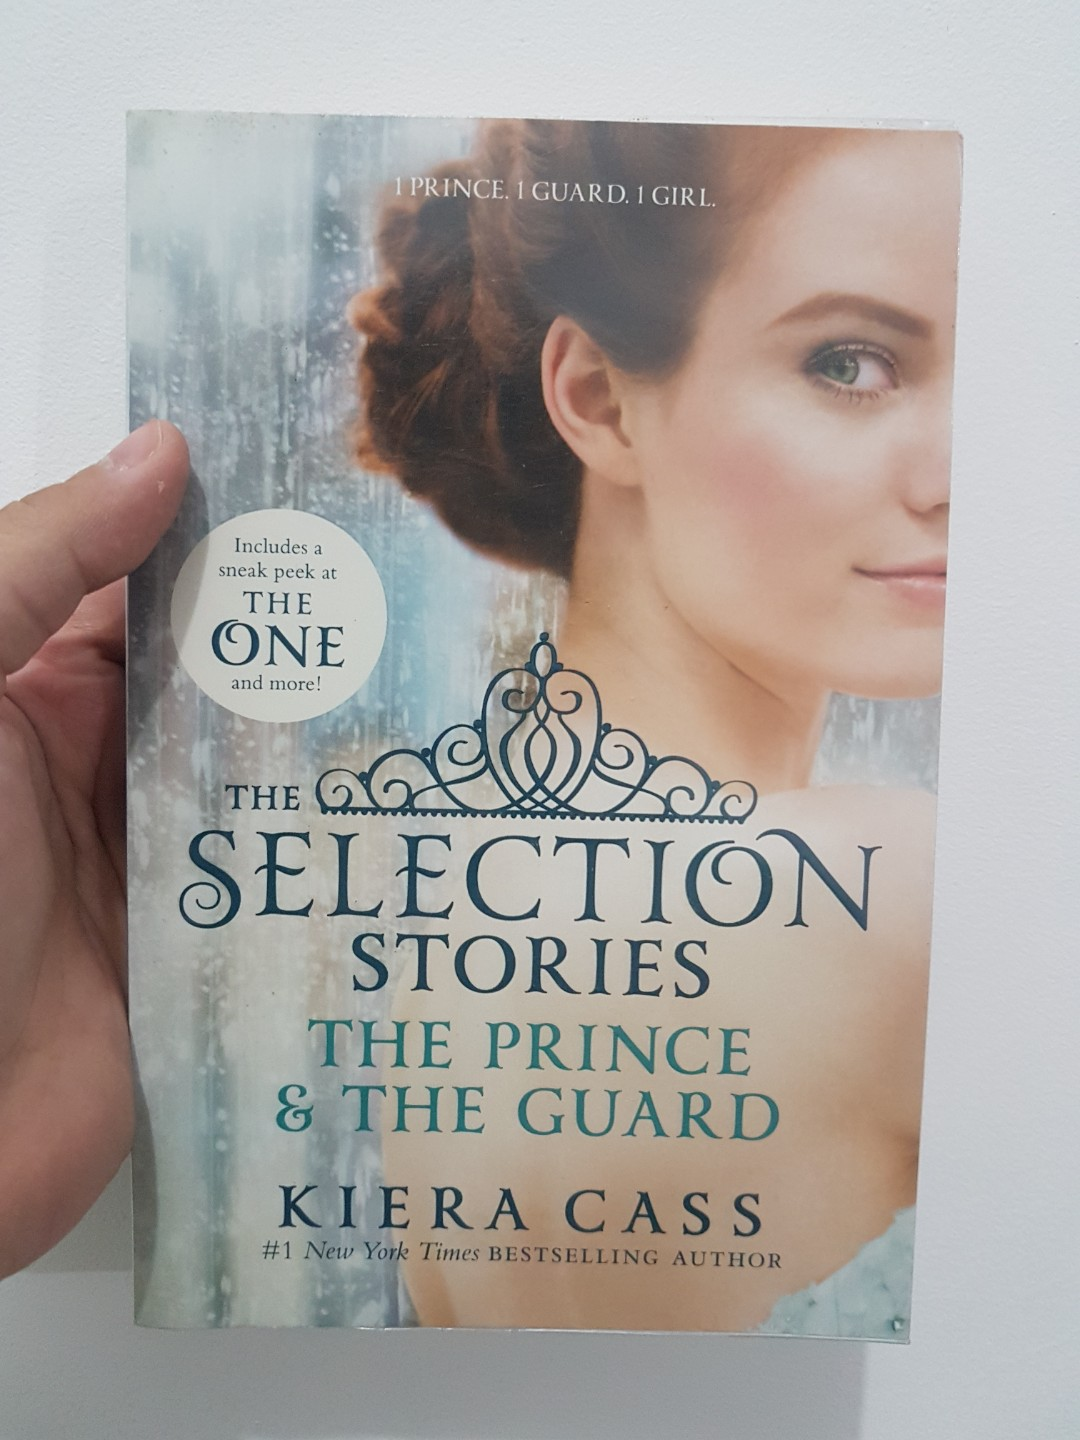 FICTION - THE SELECTION STORIES: THE PRINCE & THE GUARD BY KIERA CASS